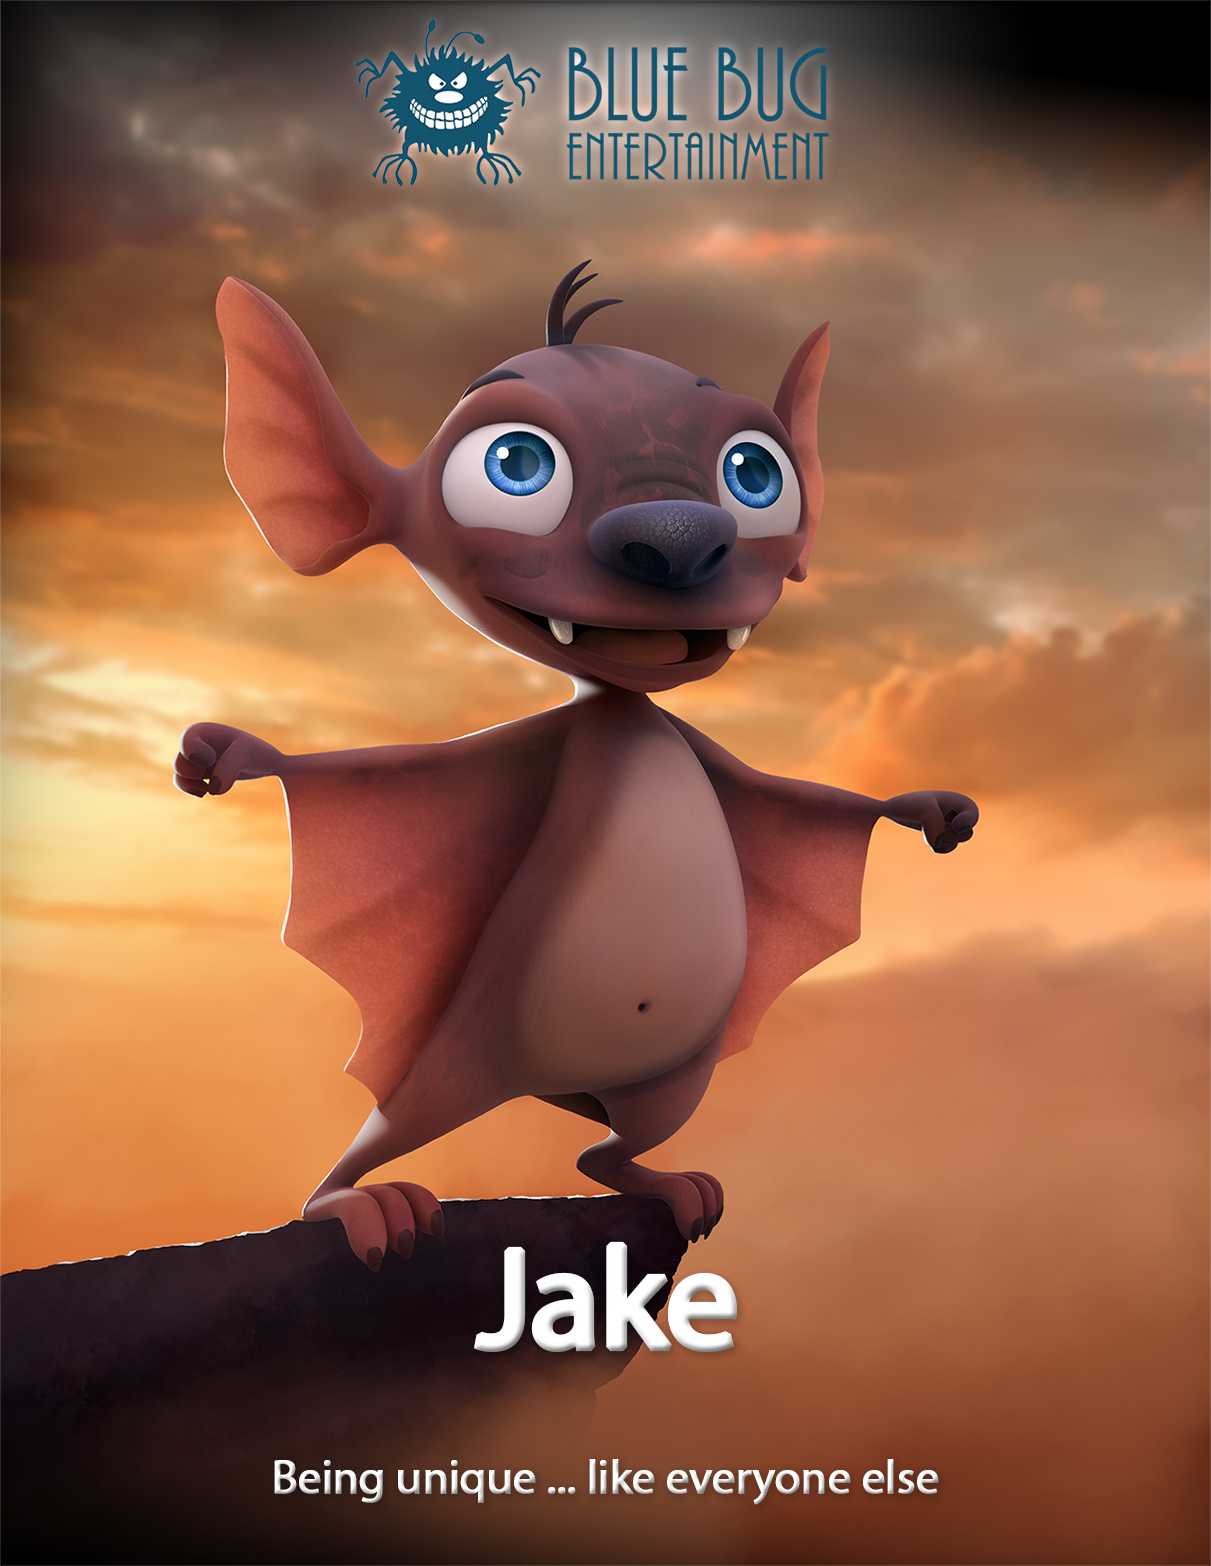 Jake is Unique like Everyone else - A defective gene has made Jake very different from other bats; diurnal, he prefers hunting during the day and unlike his fellow bats, he does not hibernate. Lost in a foreign country, these rare and unusual characteristics, which were considered a disability in his own colony, will help him become a hero to his new friends. Still, family ties are always there to remind us we should never forget where we come from.